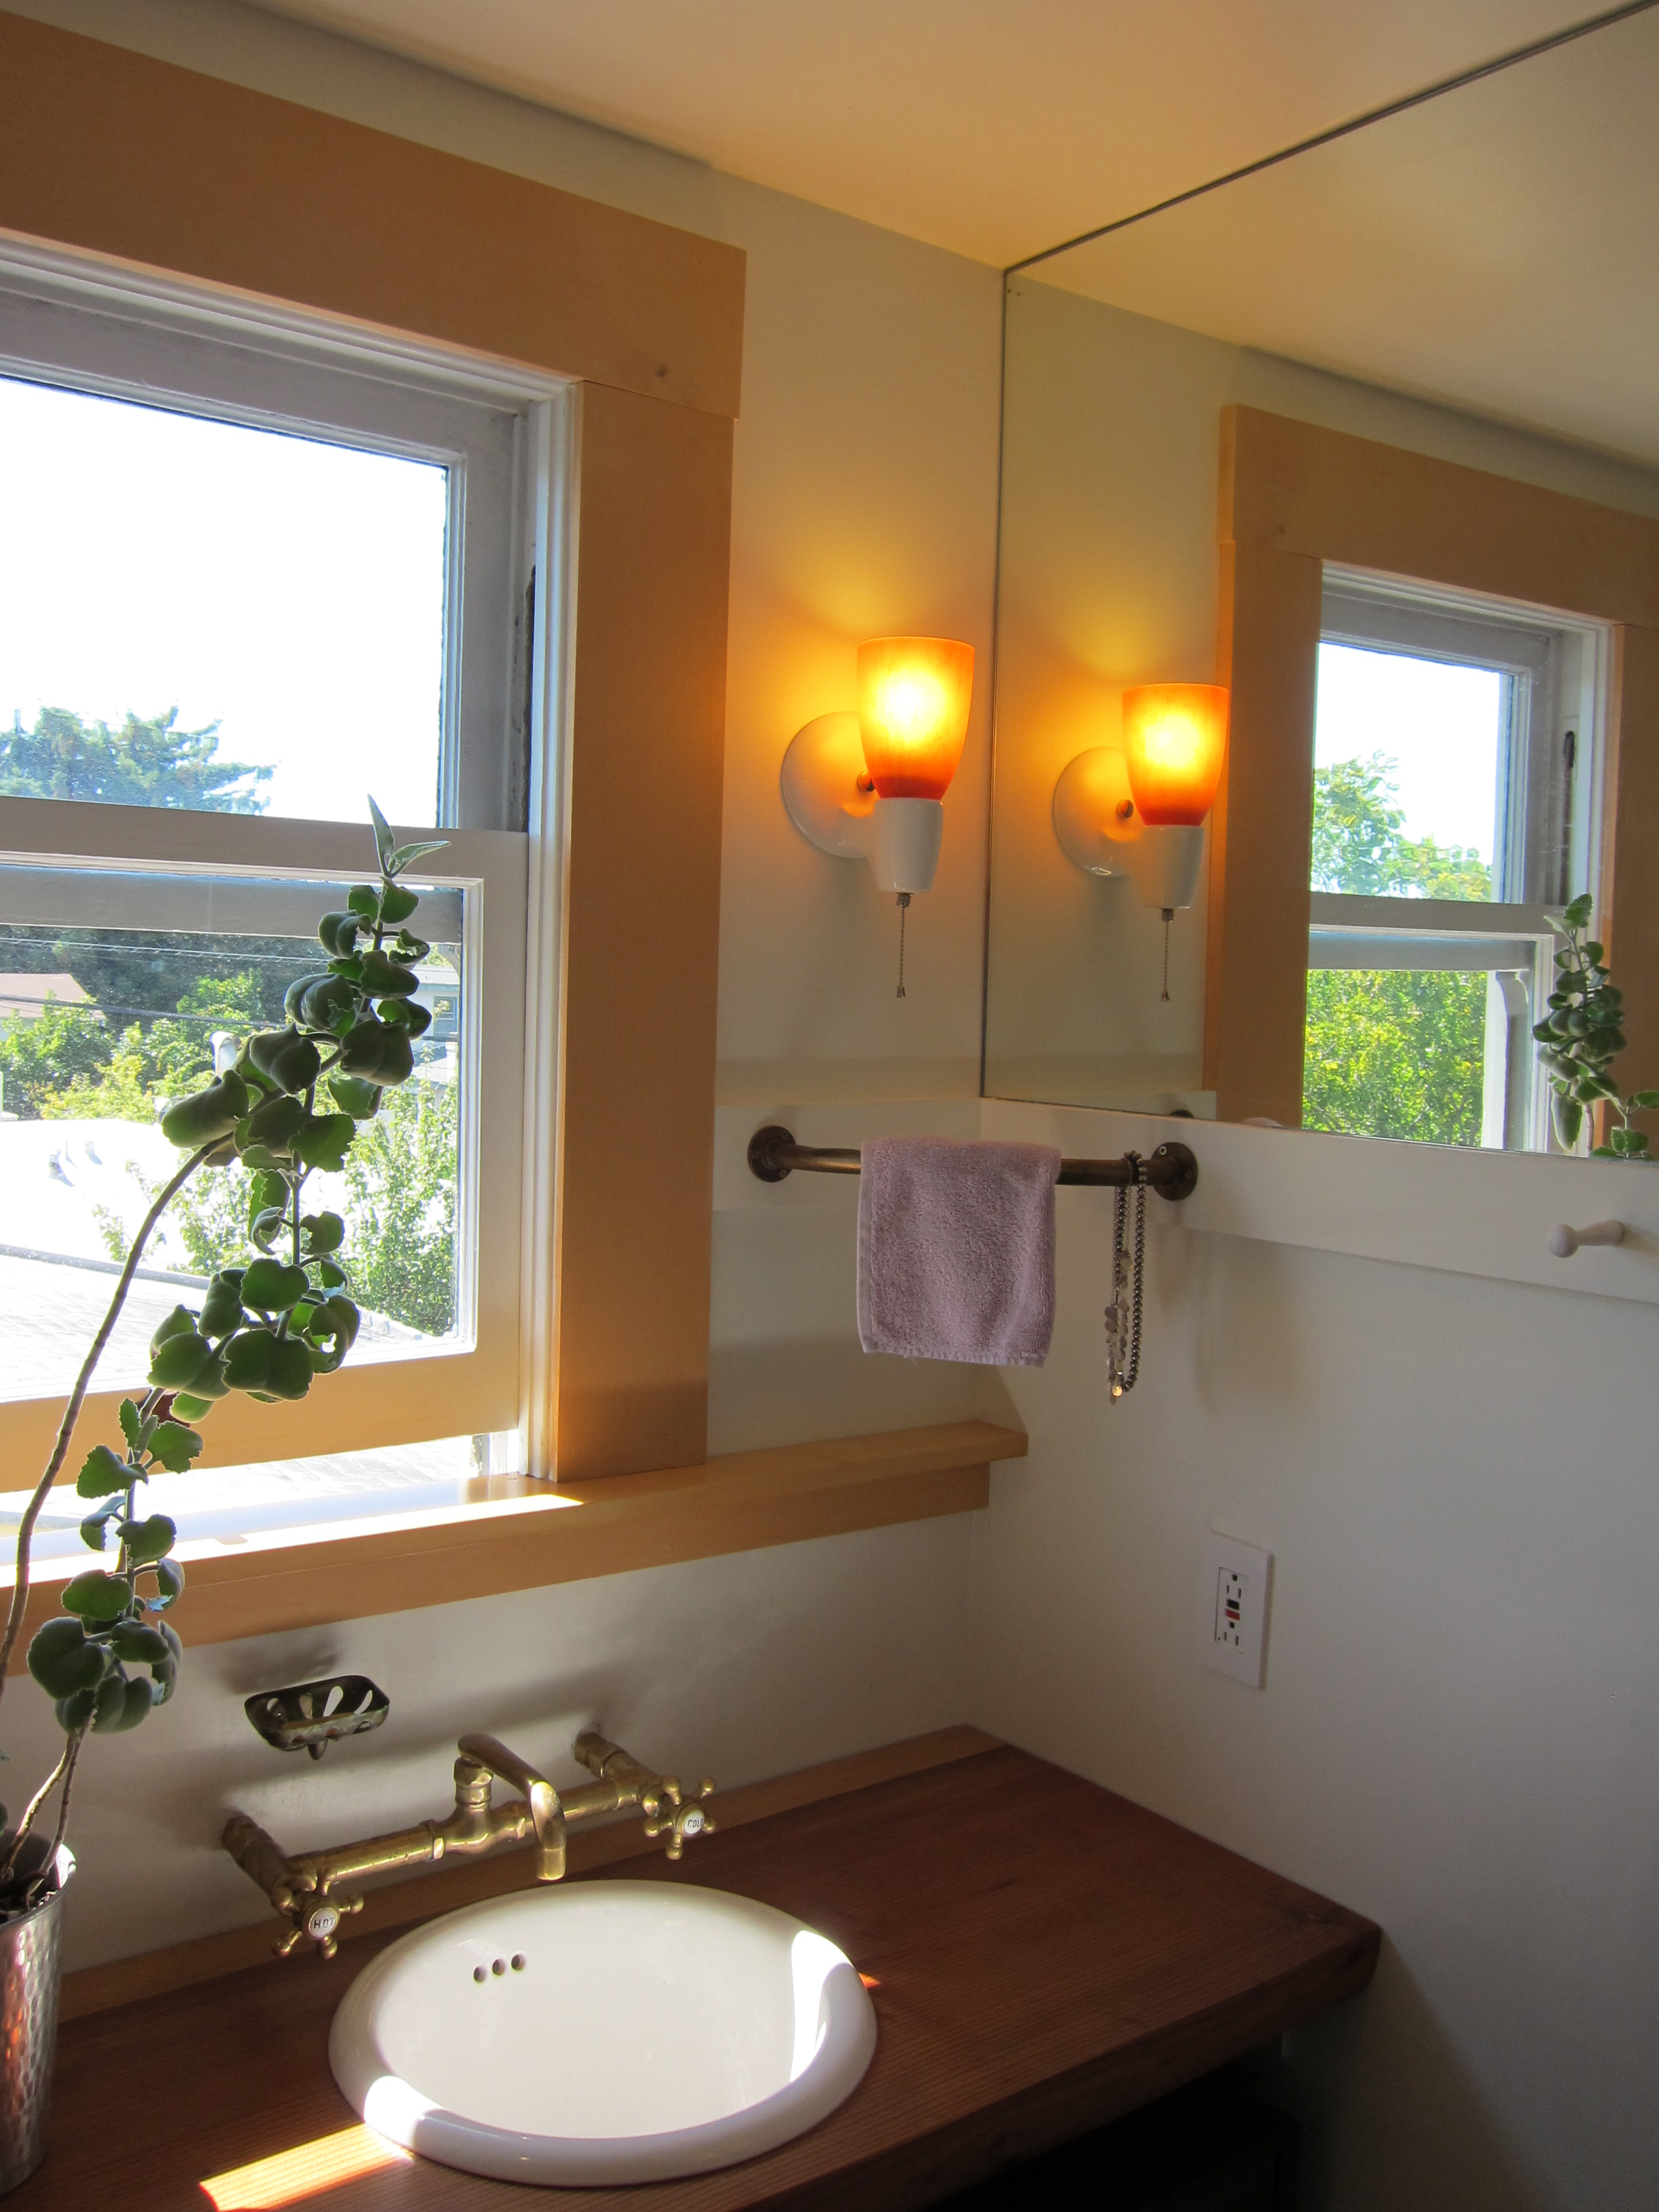 The Secondhand Unprotected Brass Faucets And Shower Valve Are From Ragnar  At The Sink Factory On San Pablo, And The Nicely Patinaed Soap Dish And  Towel Bar ...